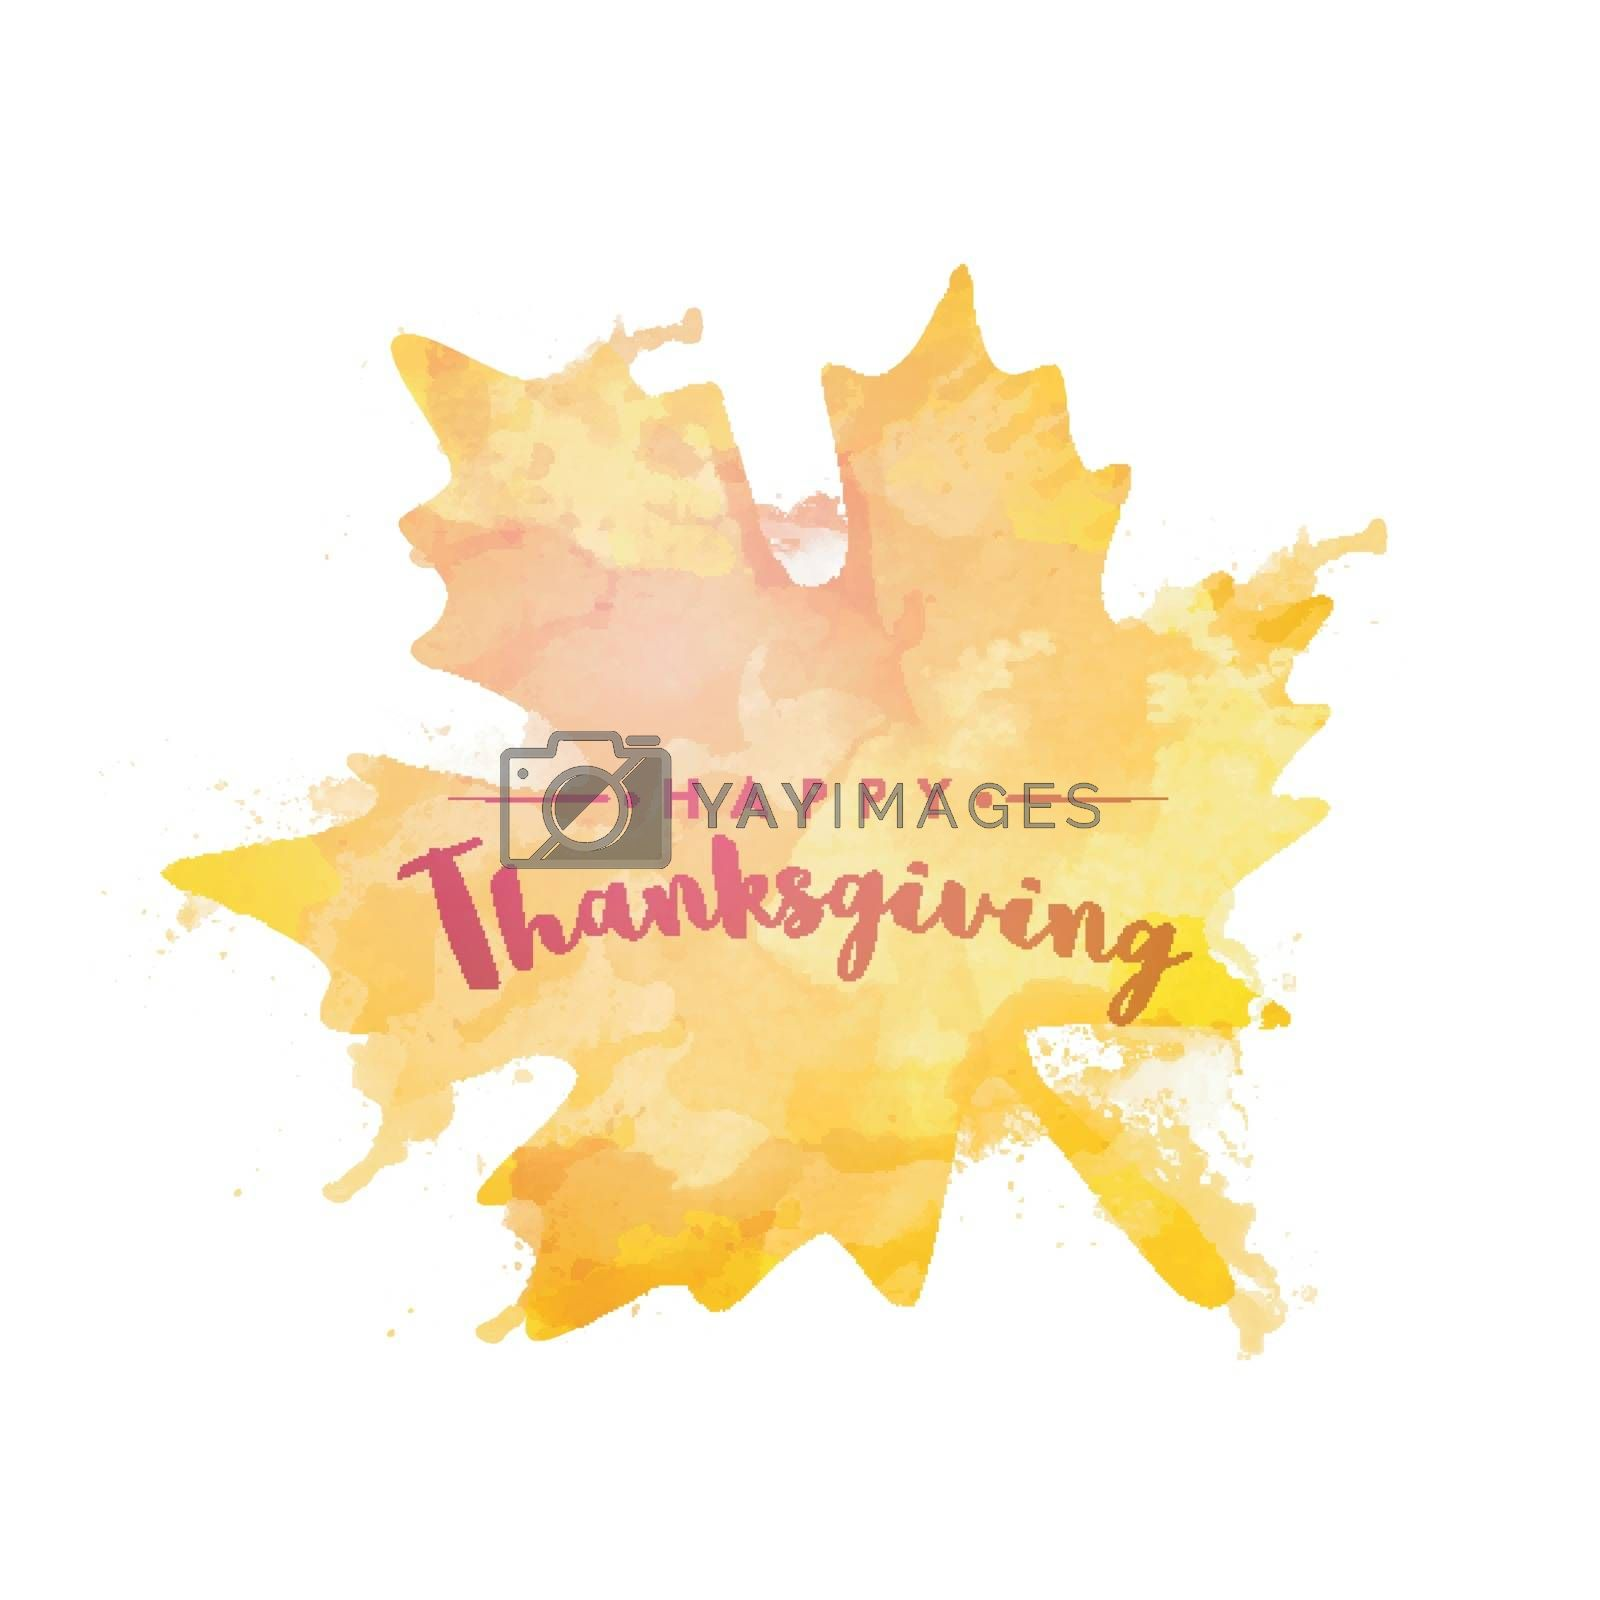 Happy Thanksgiving Day background with abstract maple leaf made by watercolor splash on white background.